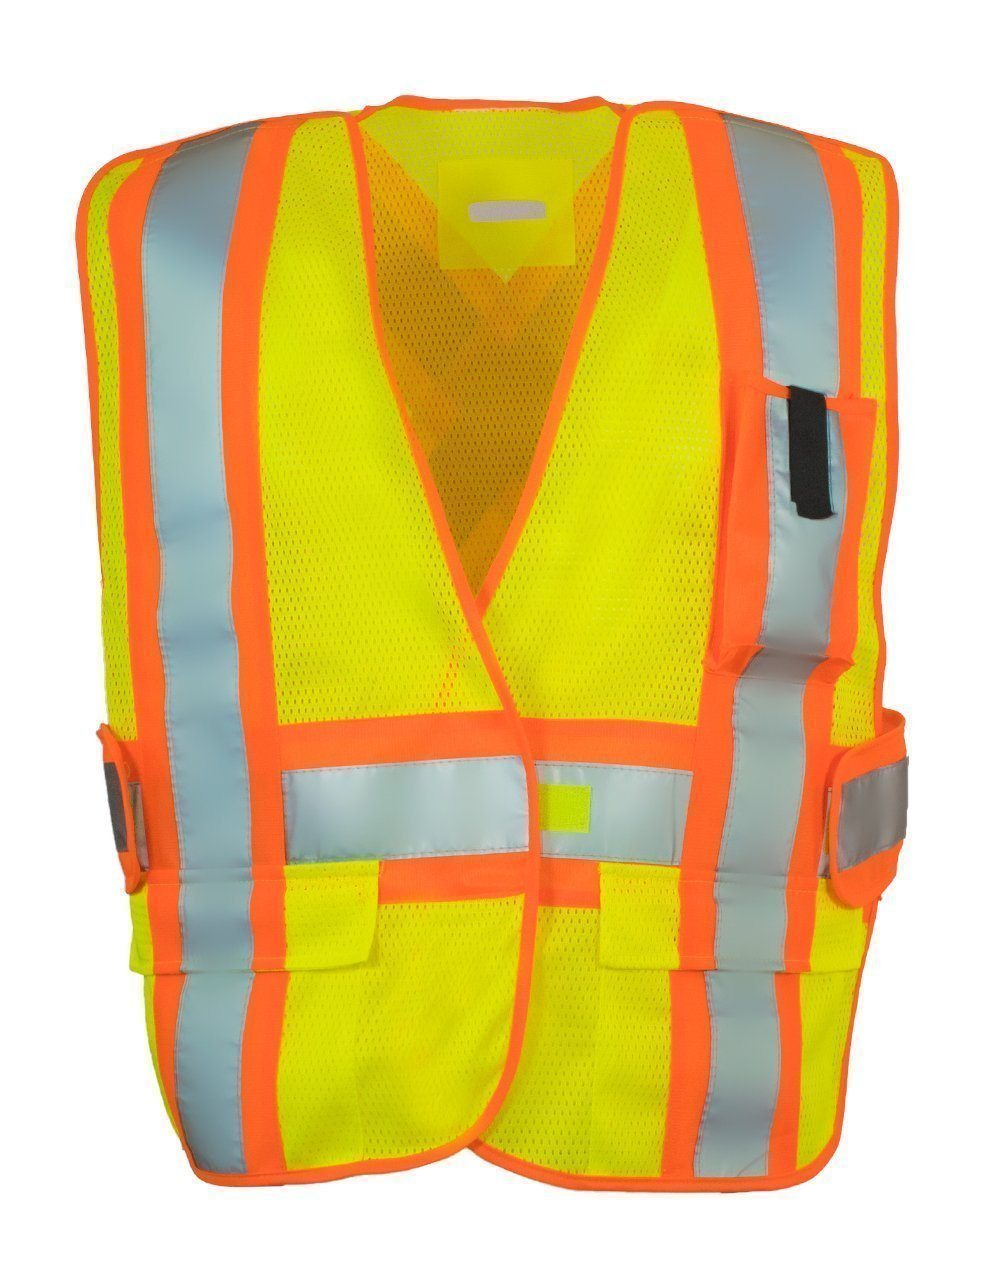 Forcefield Hi-Vis Mesh, One-size, 5-Point Tear-Away